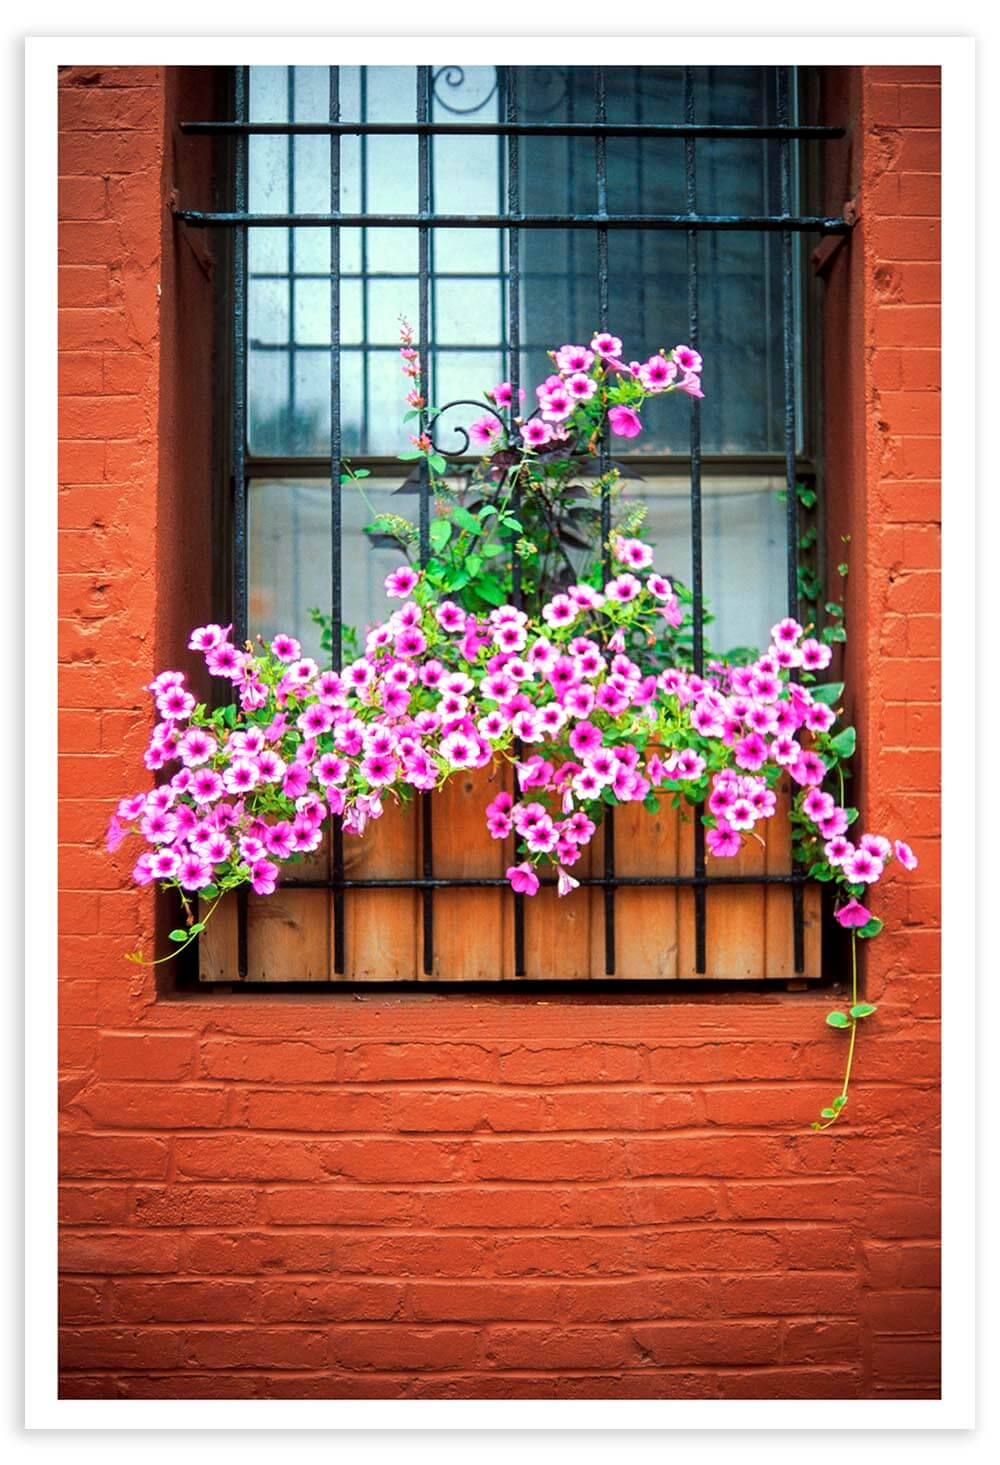 In what other city would you see flowers on the sill of a boarded-up window?